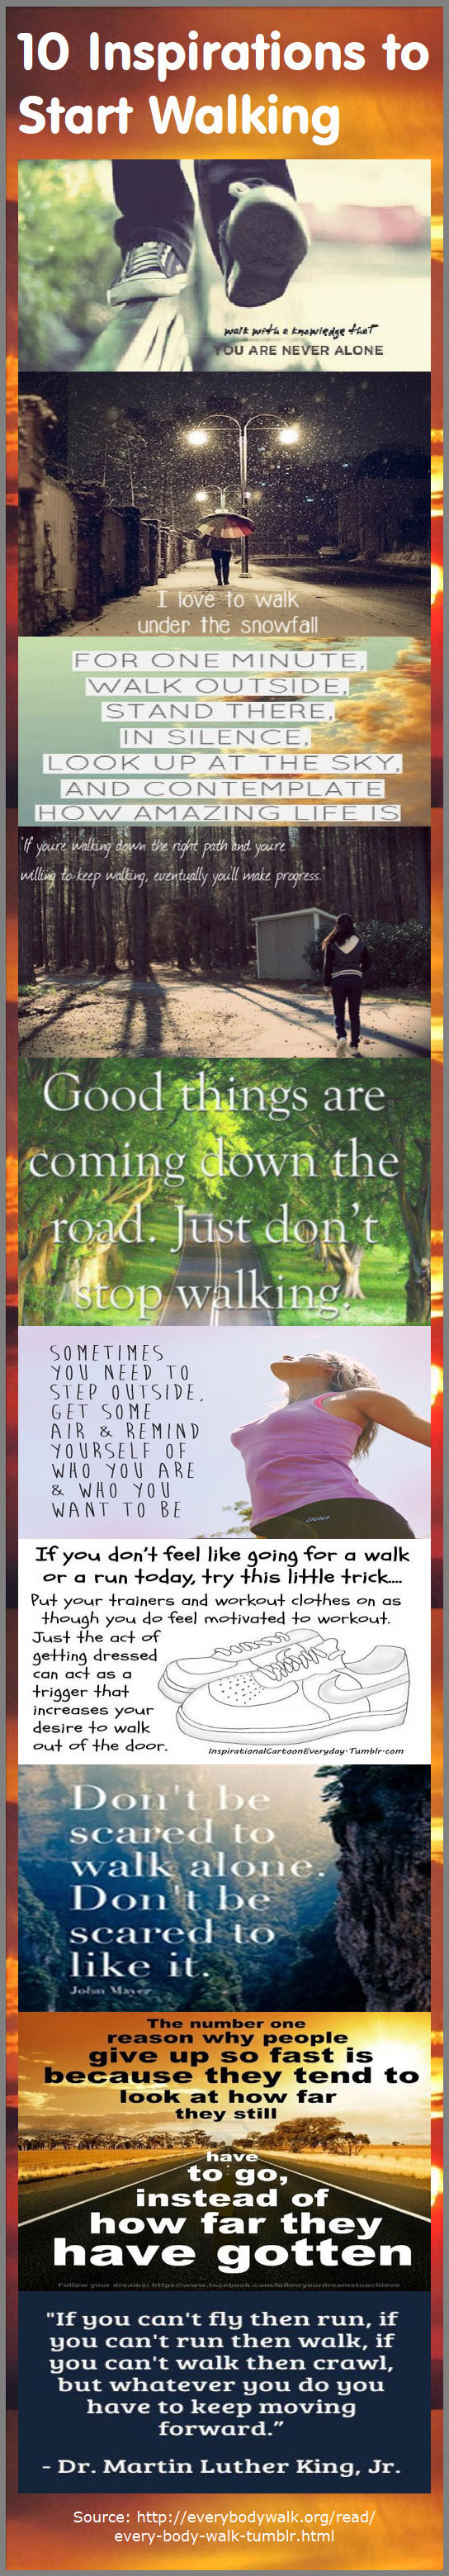 10 Inspirations to Start Walking